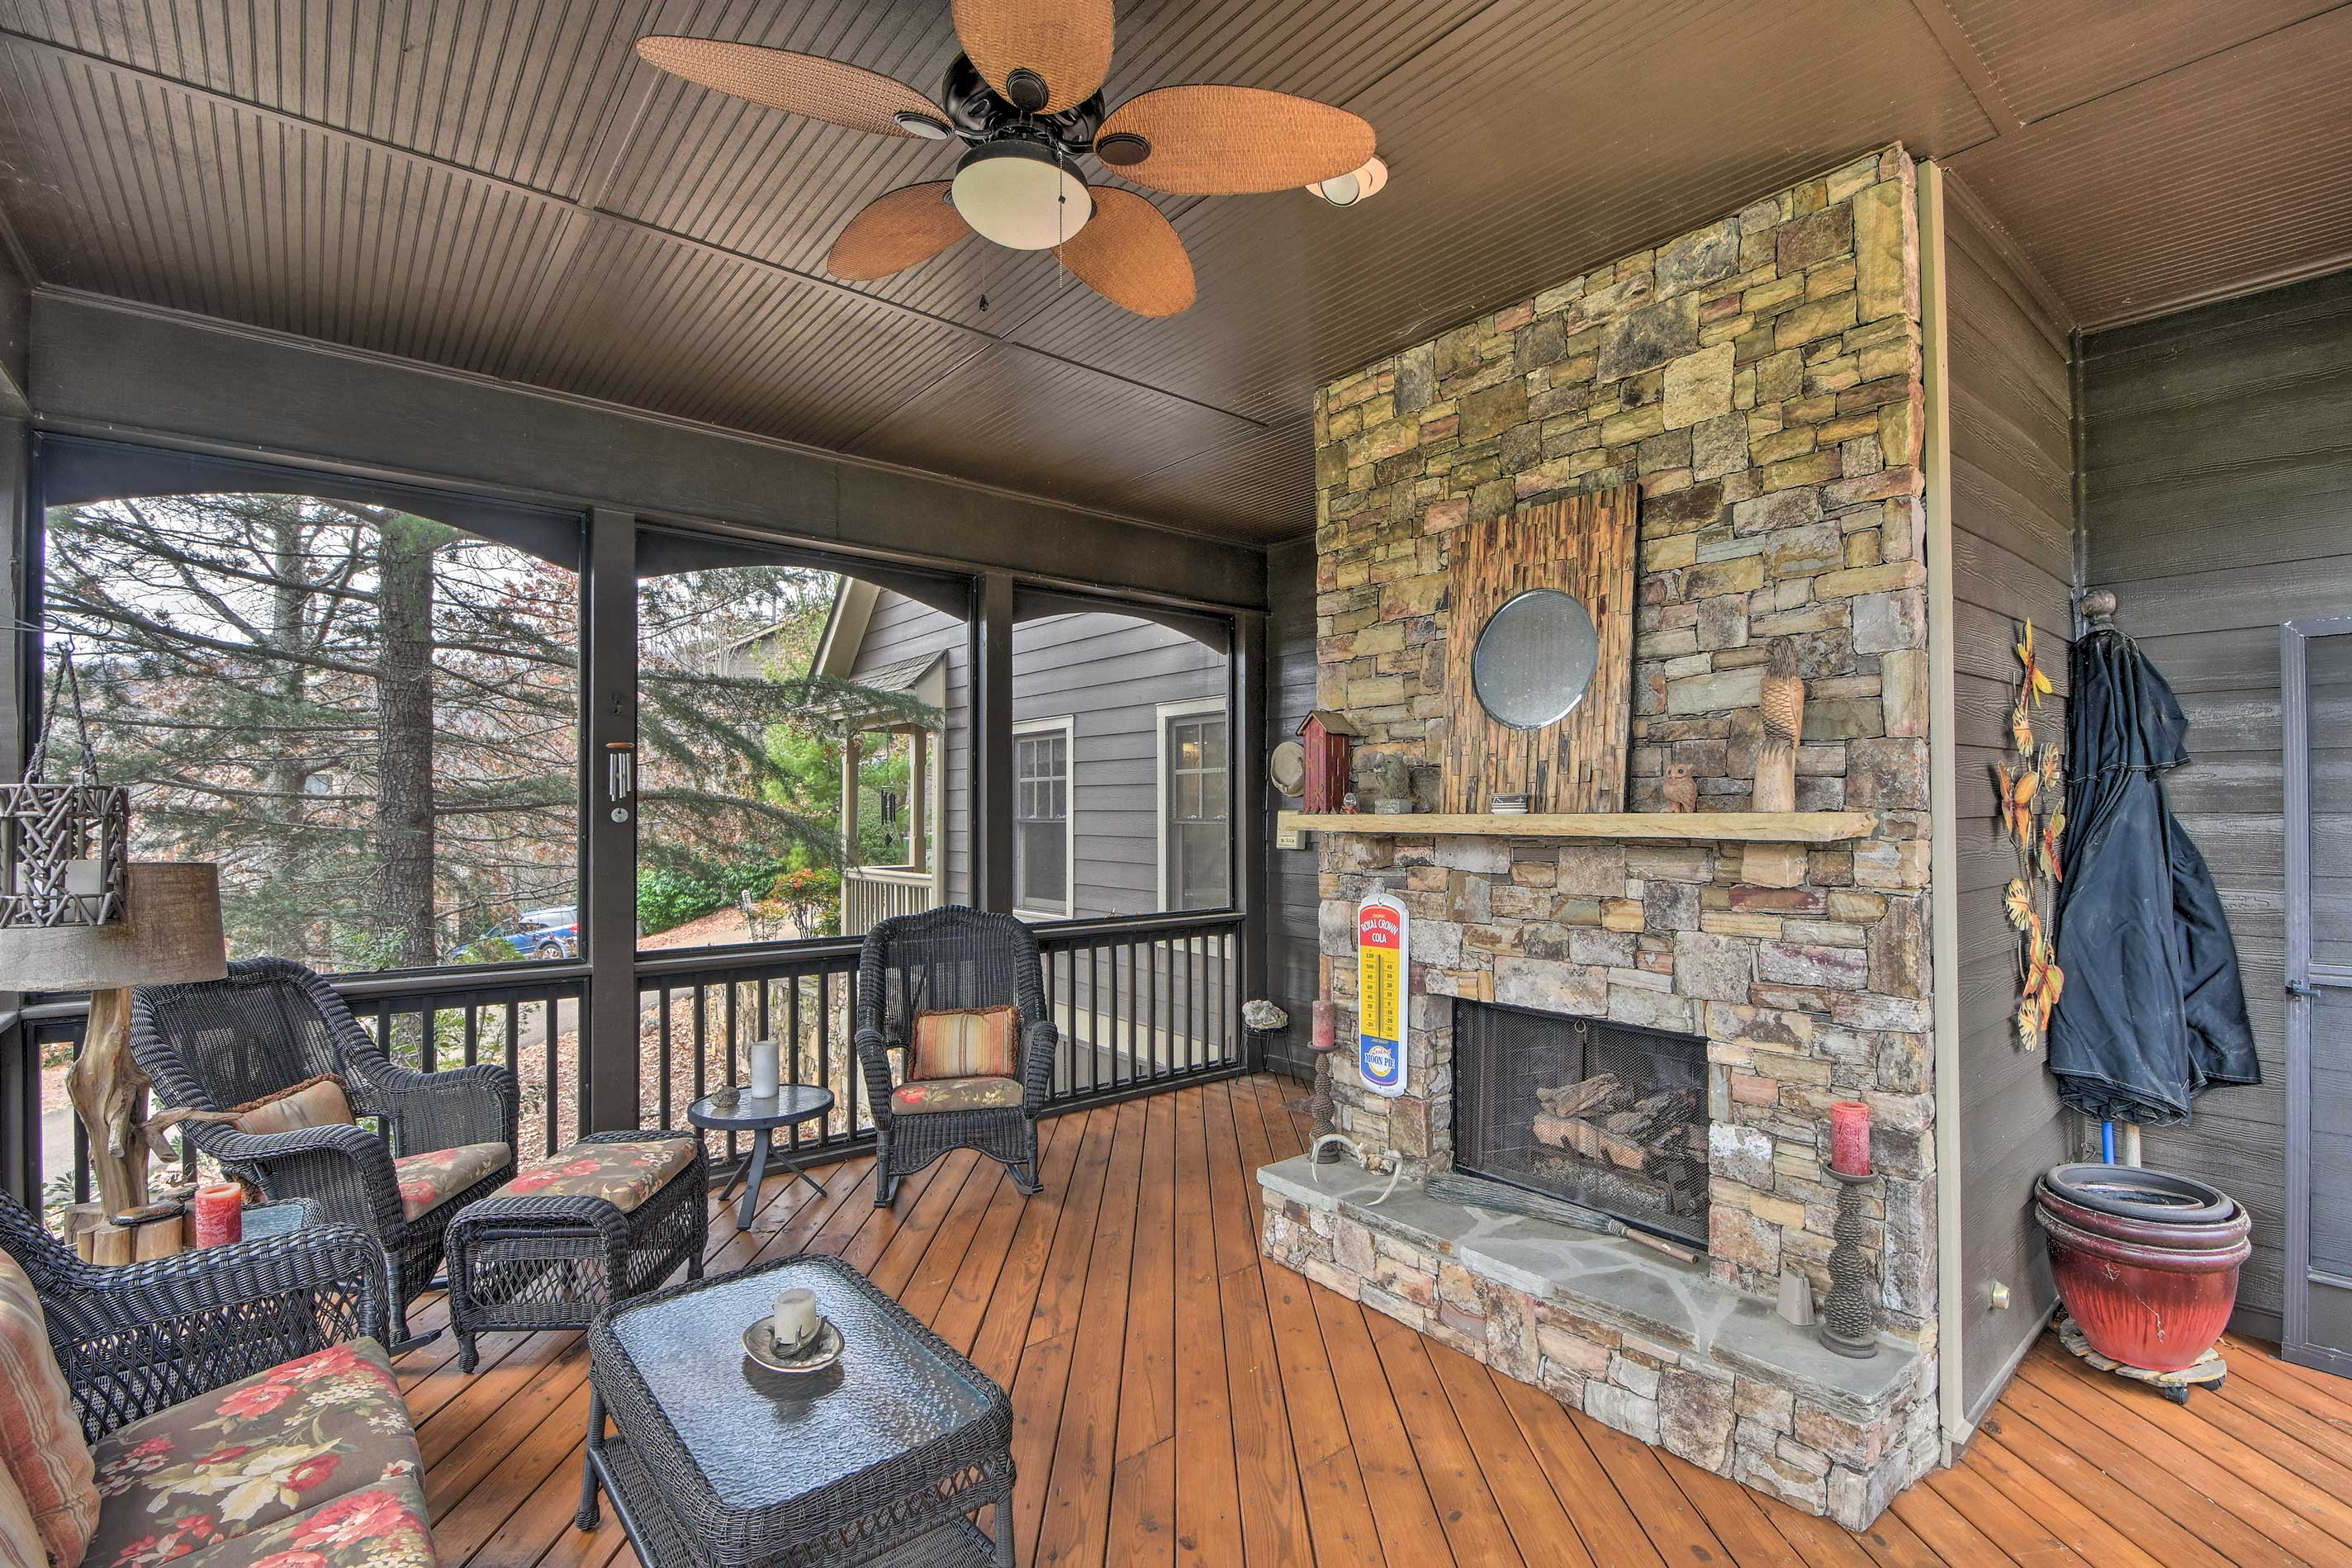 This vacation rental features both beautiful indoor and outdoor spaces.